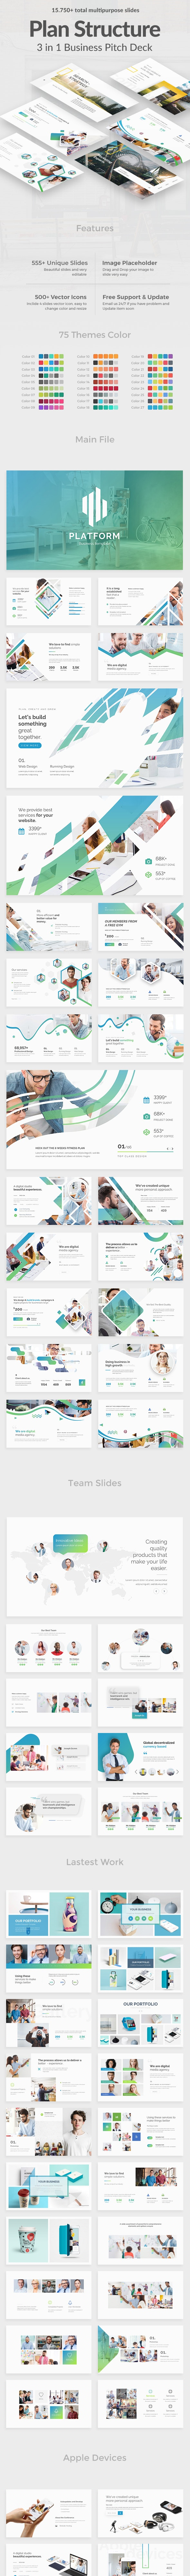 Plan Structure Pitch Deck 3 in 1  Bundle Keynote Template - Creative Keynote Templates